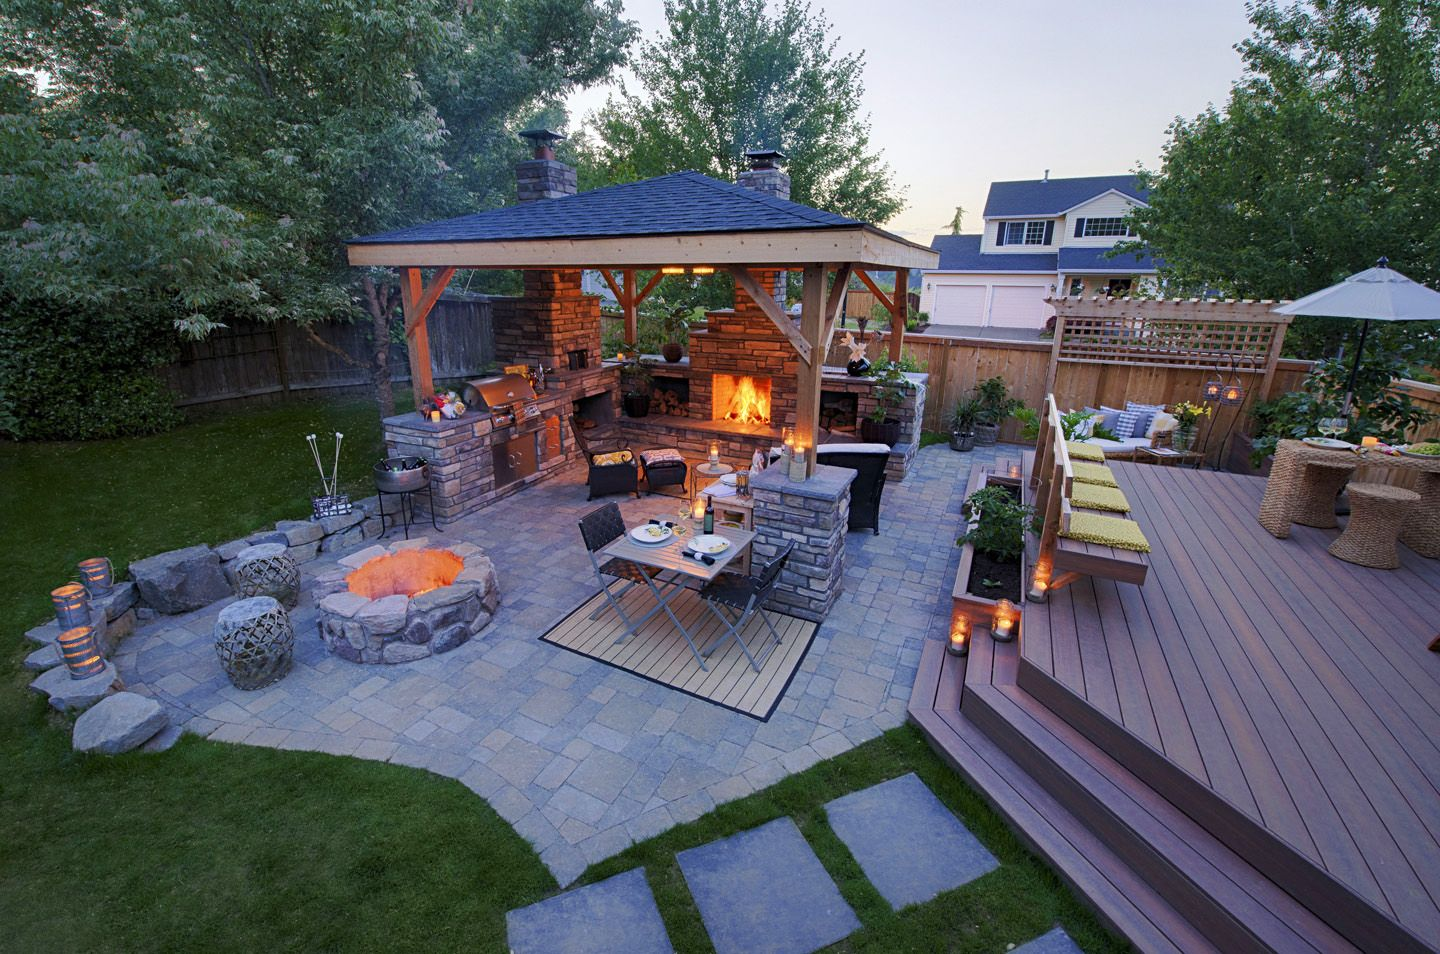 Backyard Deck Ideas (With images) | Patio design, Covered ... on Back Garden Decking Ideas id=74290